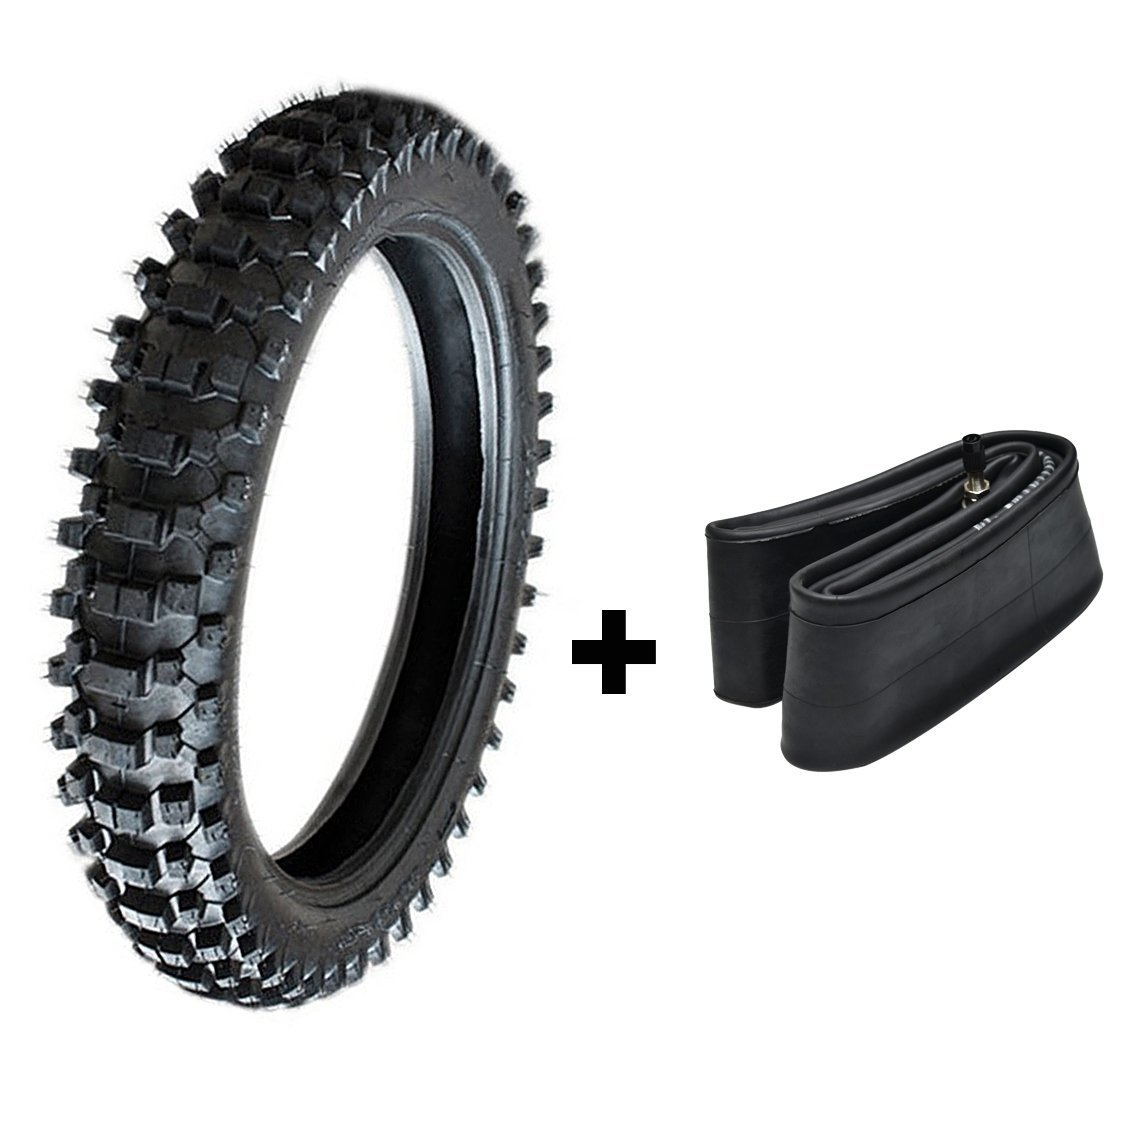 ZXTDR Off Road Tire and Tube 110/90-18 for Dirt Pit Bikes Mud Motocross Tires